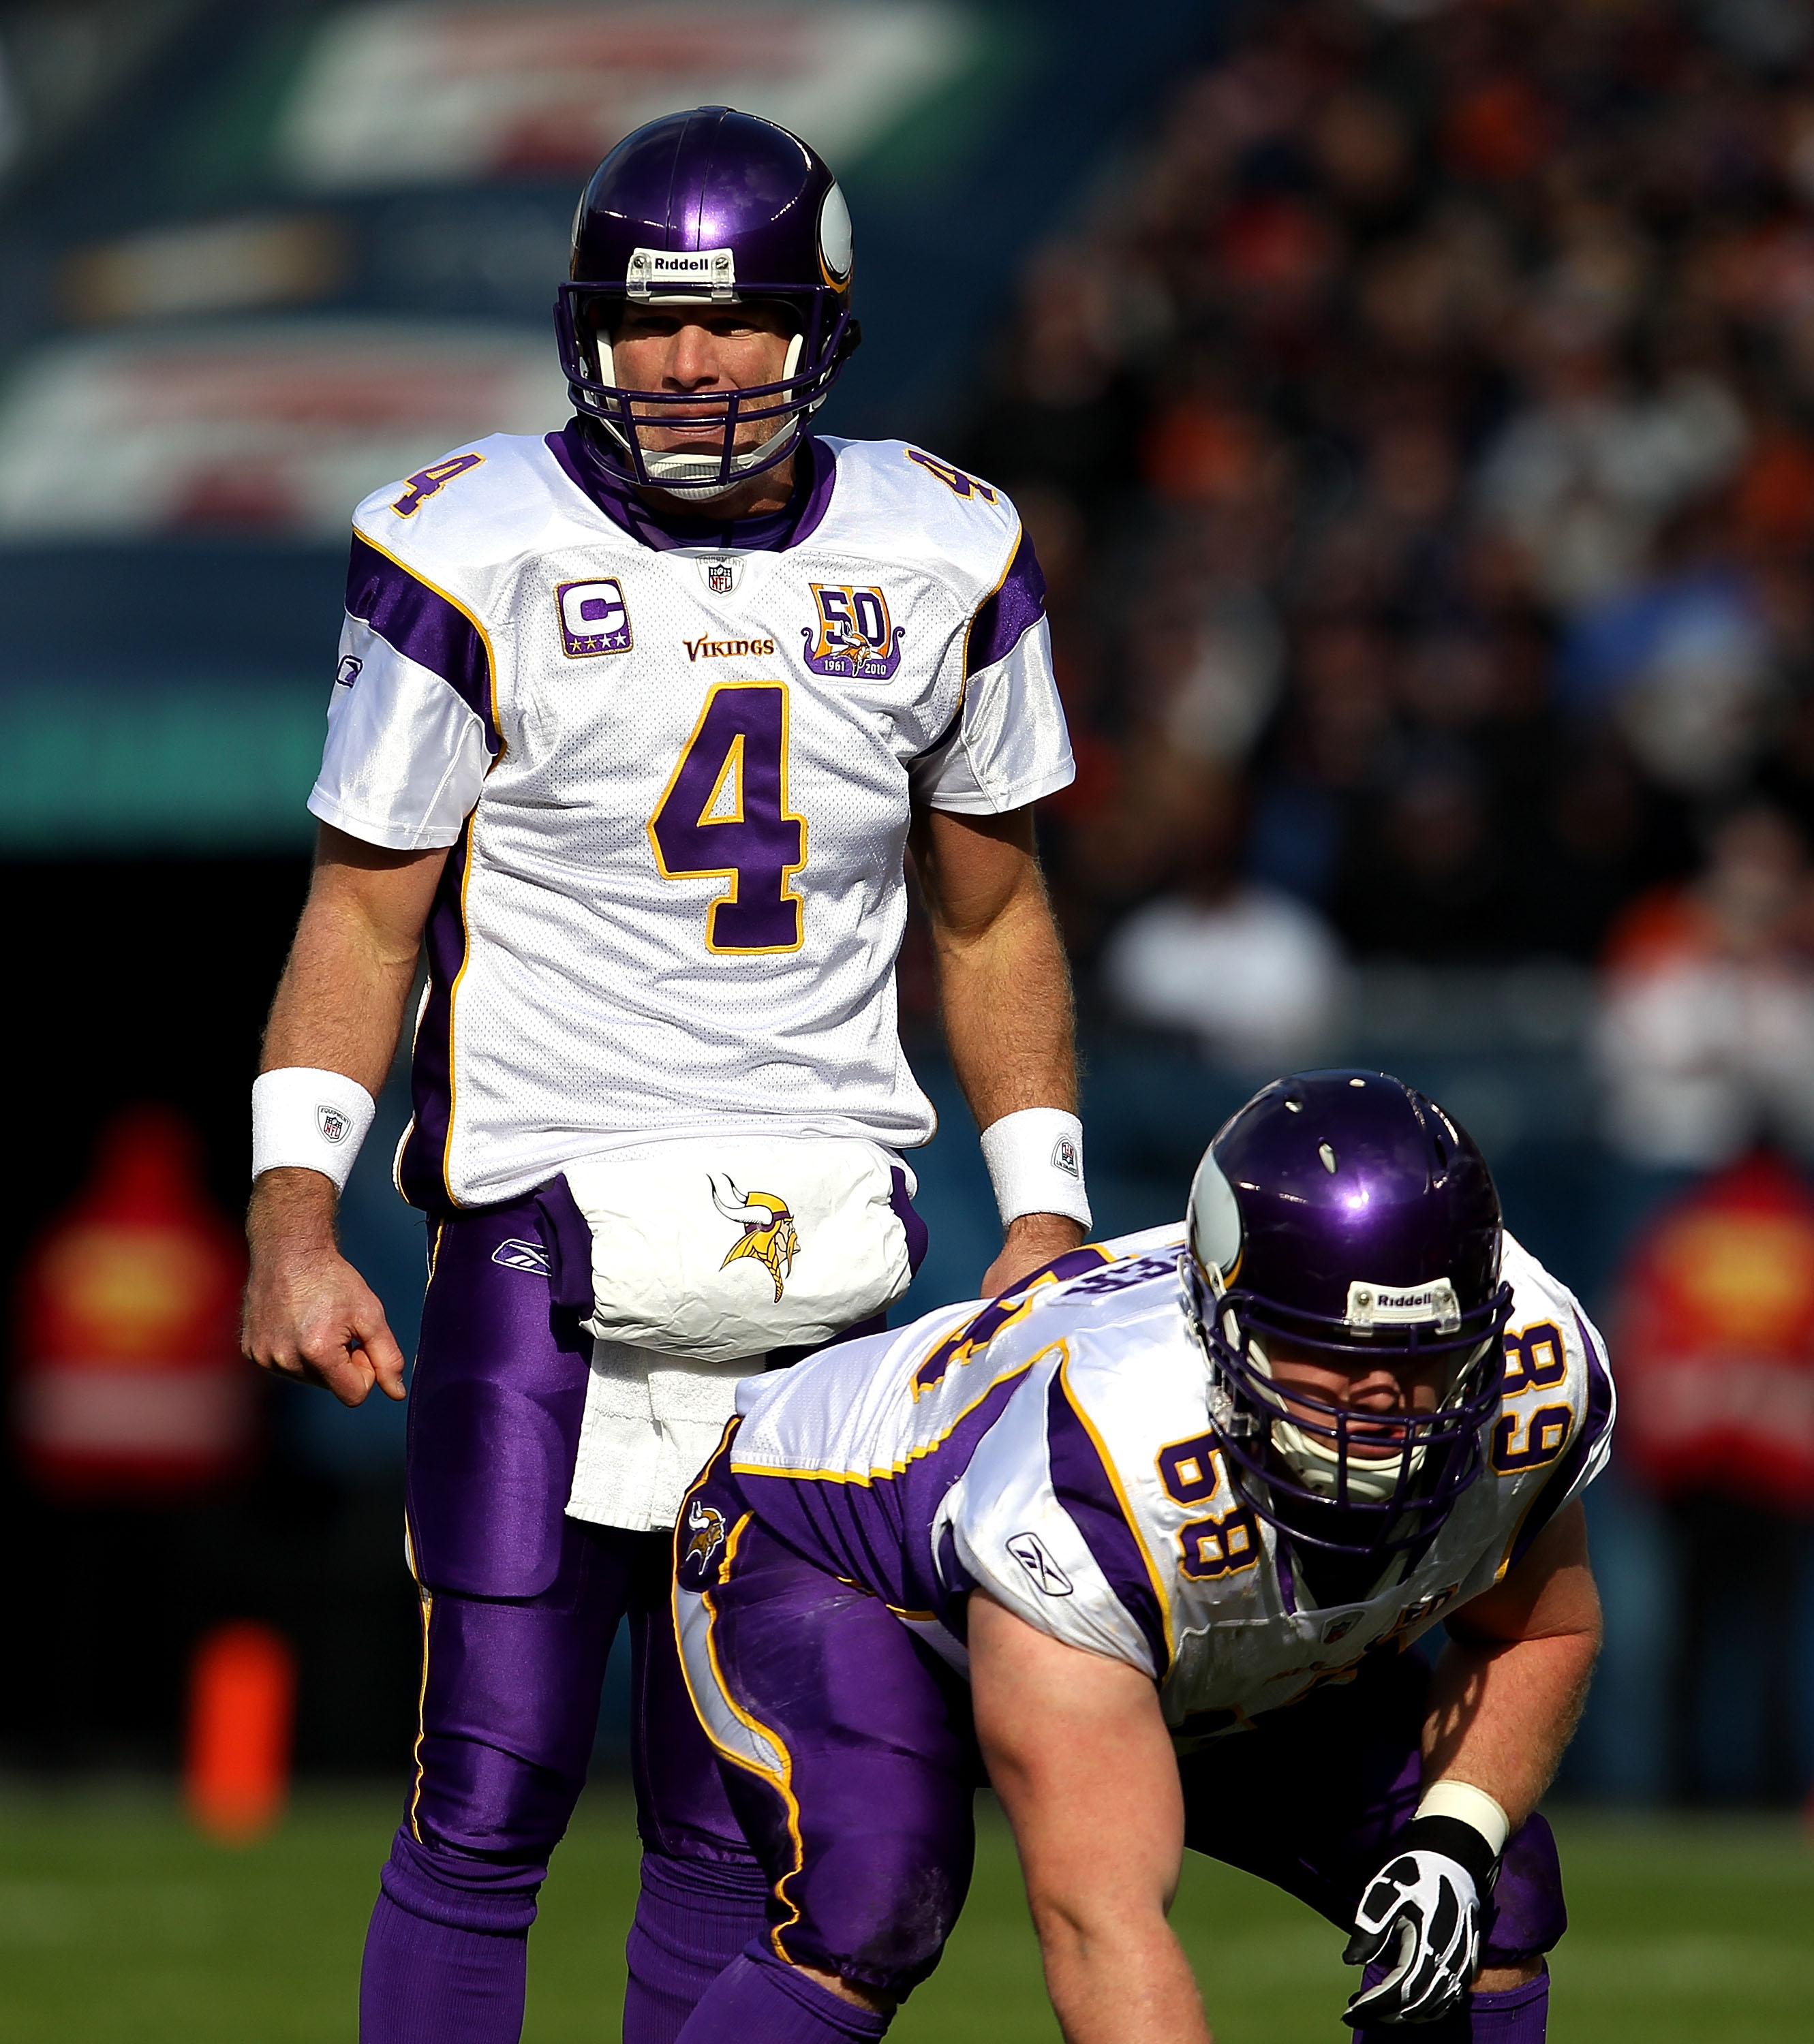 CHICAGO - NOVEMBER 14: Brett Favre #4 of the Minnesota Vikings looks over the Chicago Bear defense before taking the snap from Jon Cooper #68 at Soldier Field on November 14, 2010 in Chicago, Illinois. The Bears defeated the Vikings 27-13.  (Photo by Jona